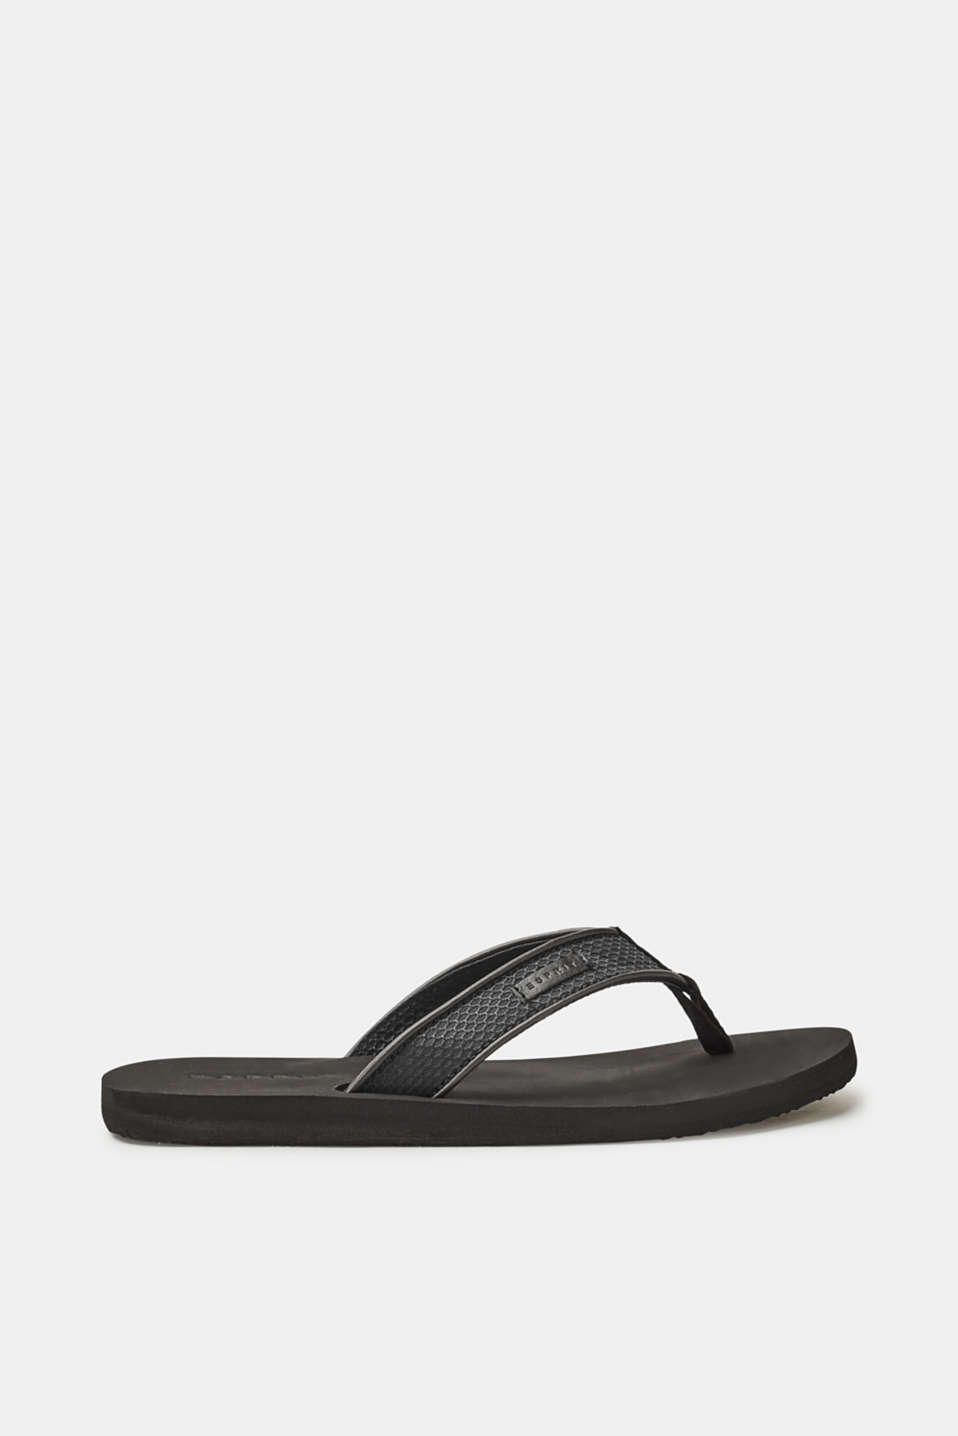 Esprit - Toe-post sandals with wide, textured straps